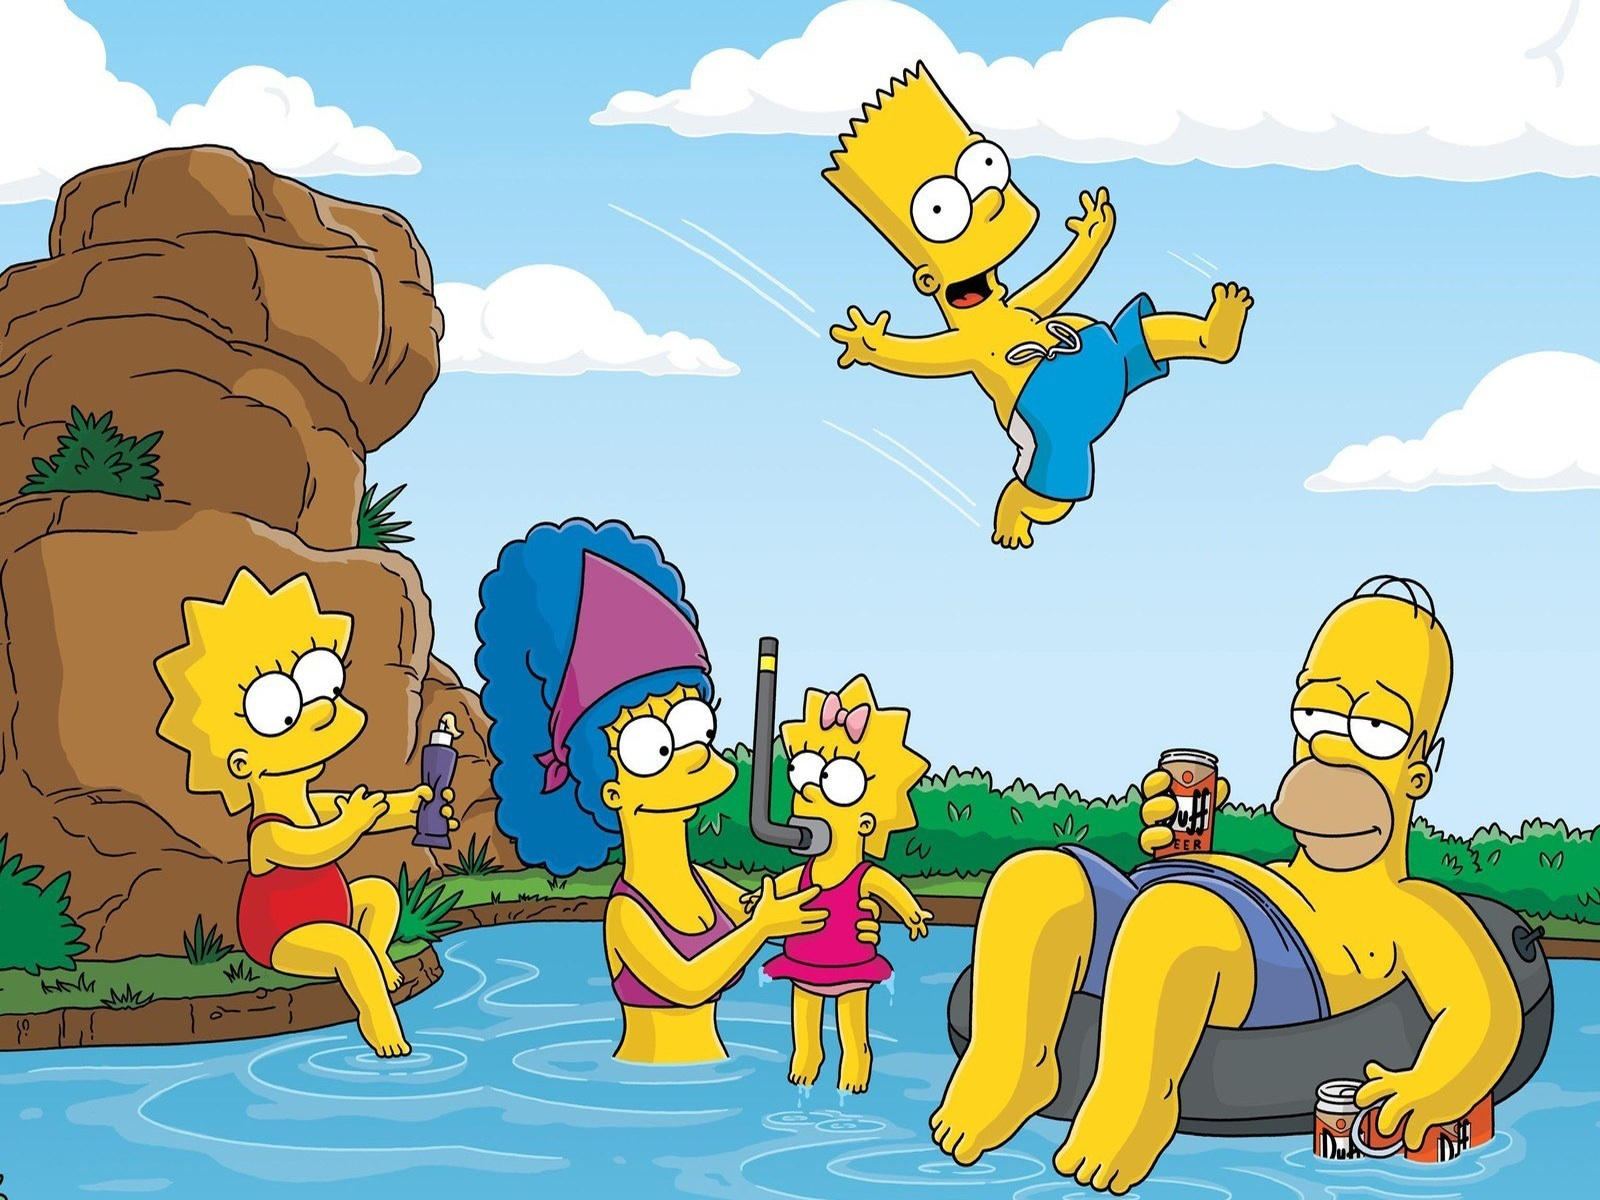 HD Wallpapers The Simpsons - The Simpsons Family | The Simpsons ...